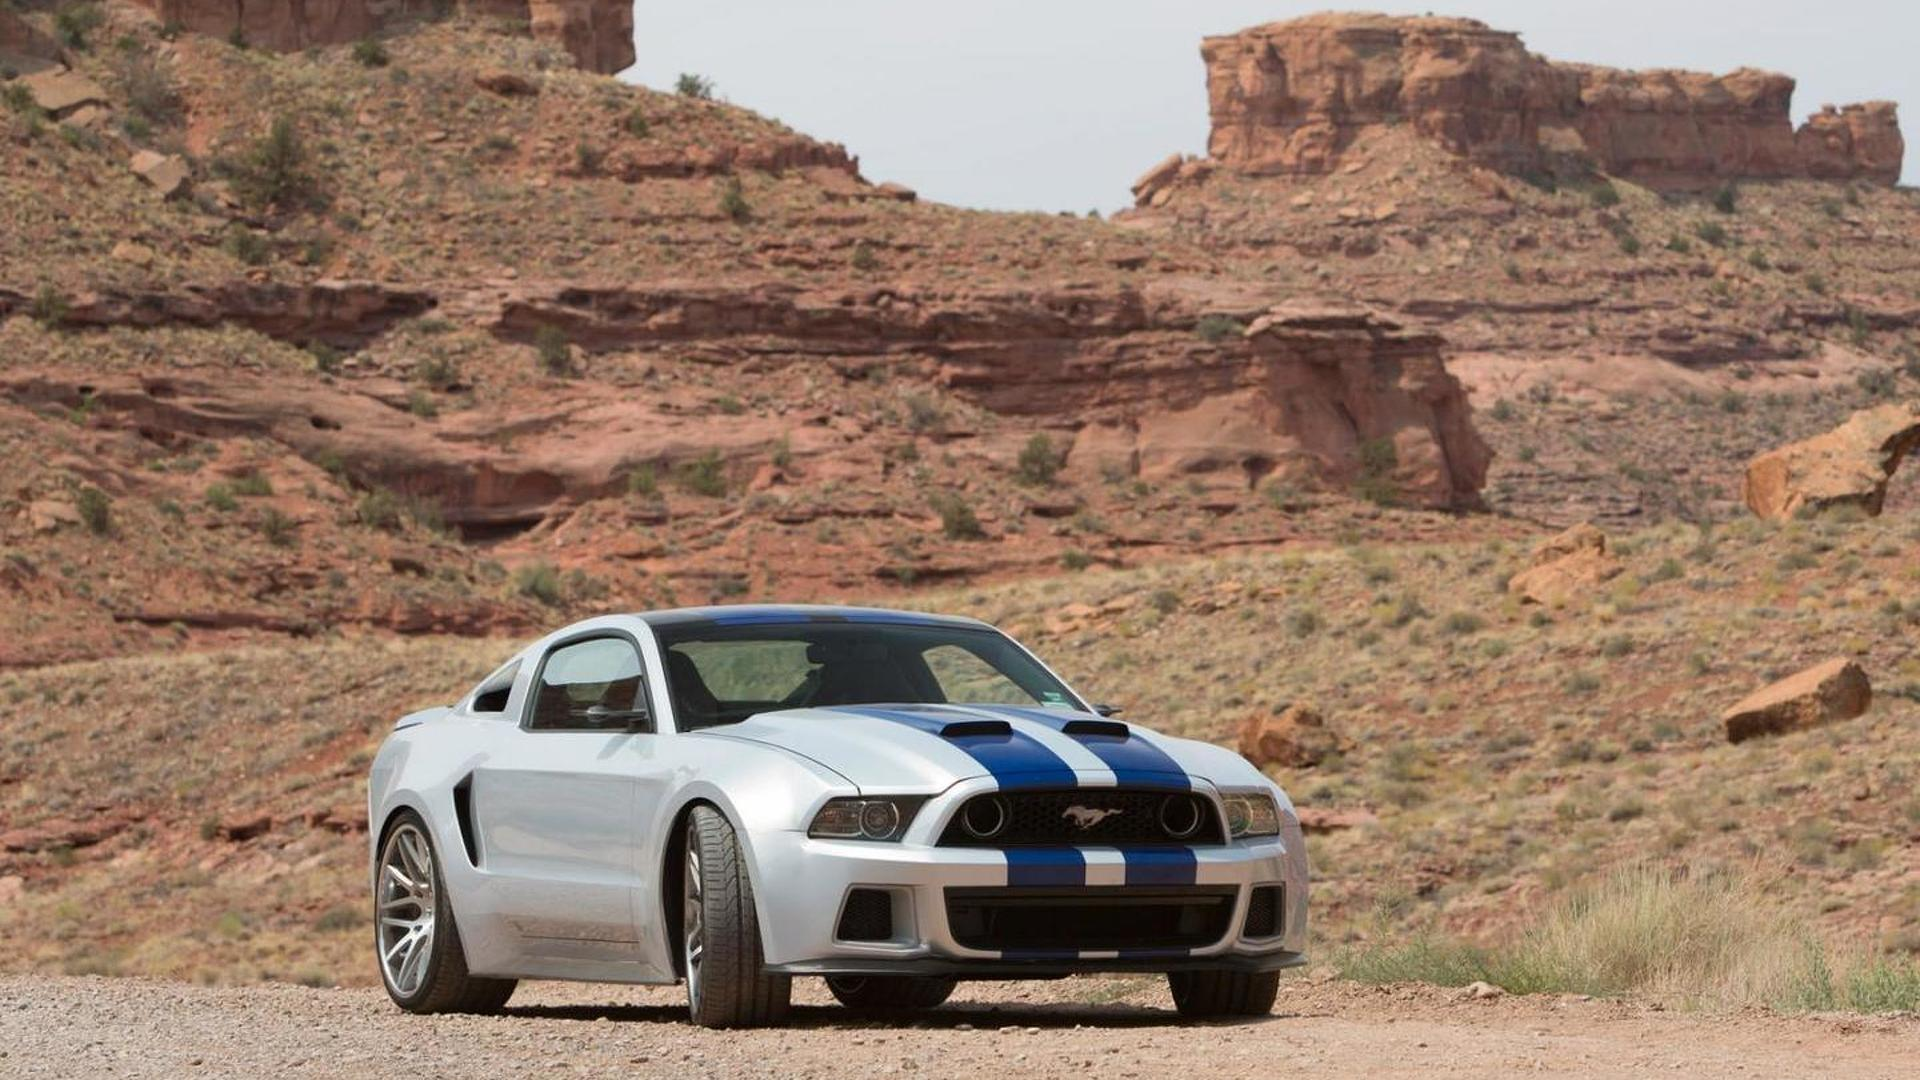 2014 Ford Mustang from Need For Speed movie going up for auction